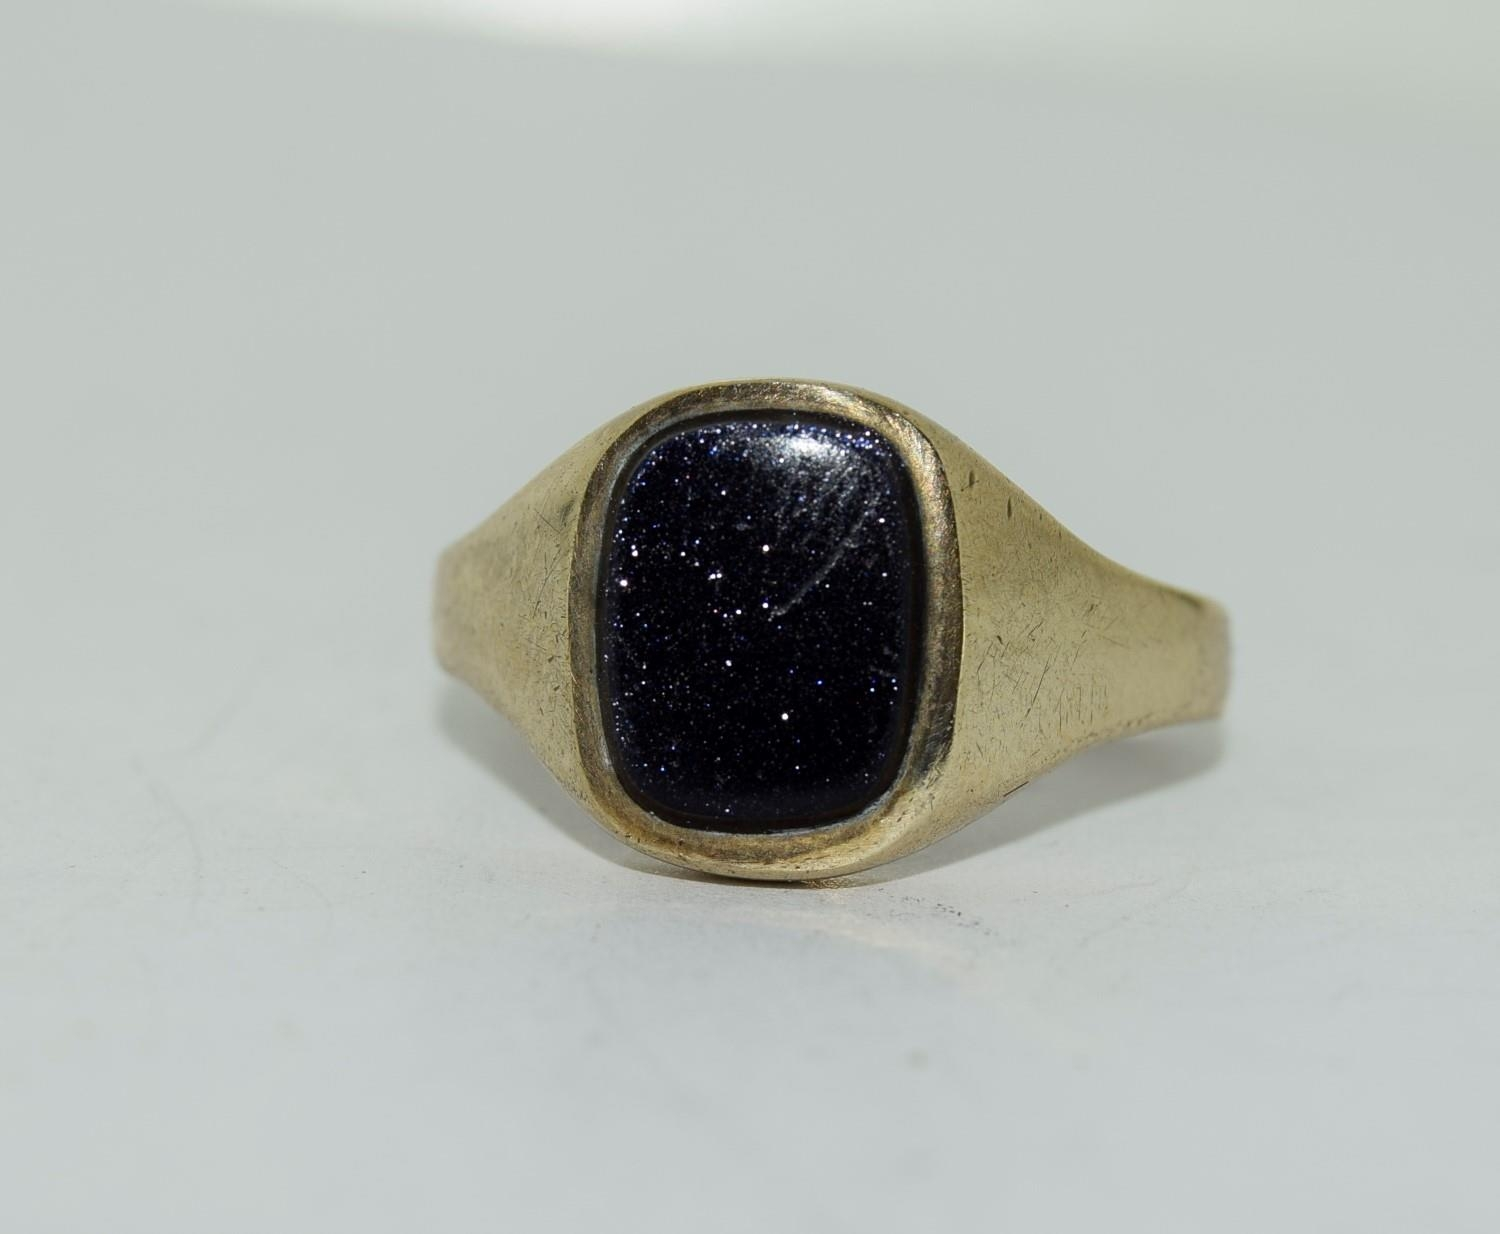 9ct gold gents sygnet ring set with unpolished amethyst centre stone size Q - Image 2 of 12